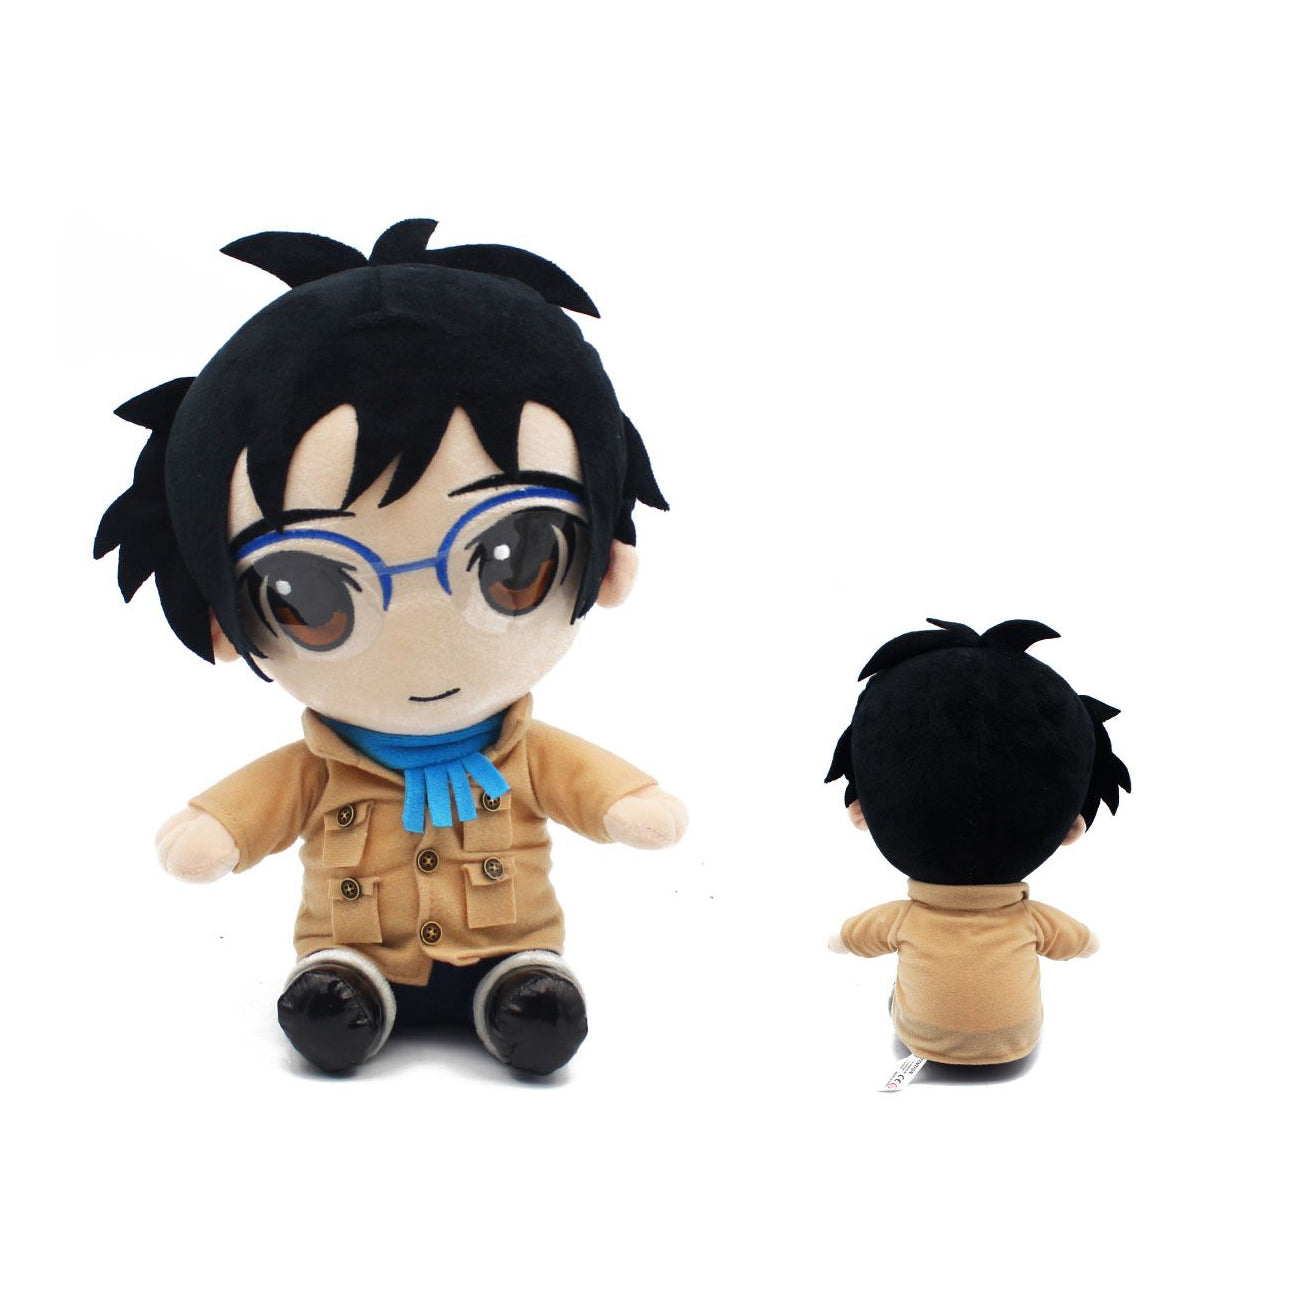 Yuri!!! ON ICE Yuri Katsuki Plush 12-Inch